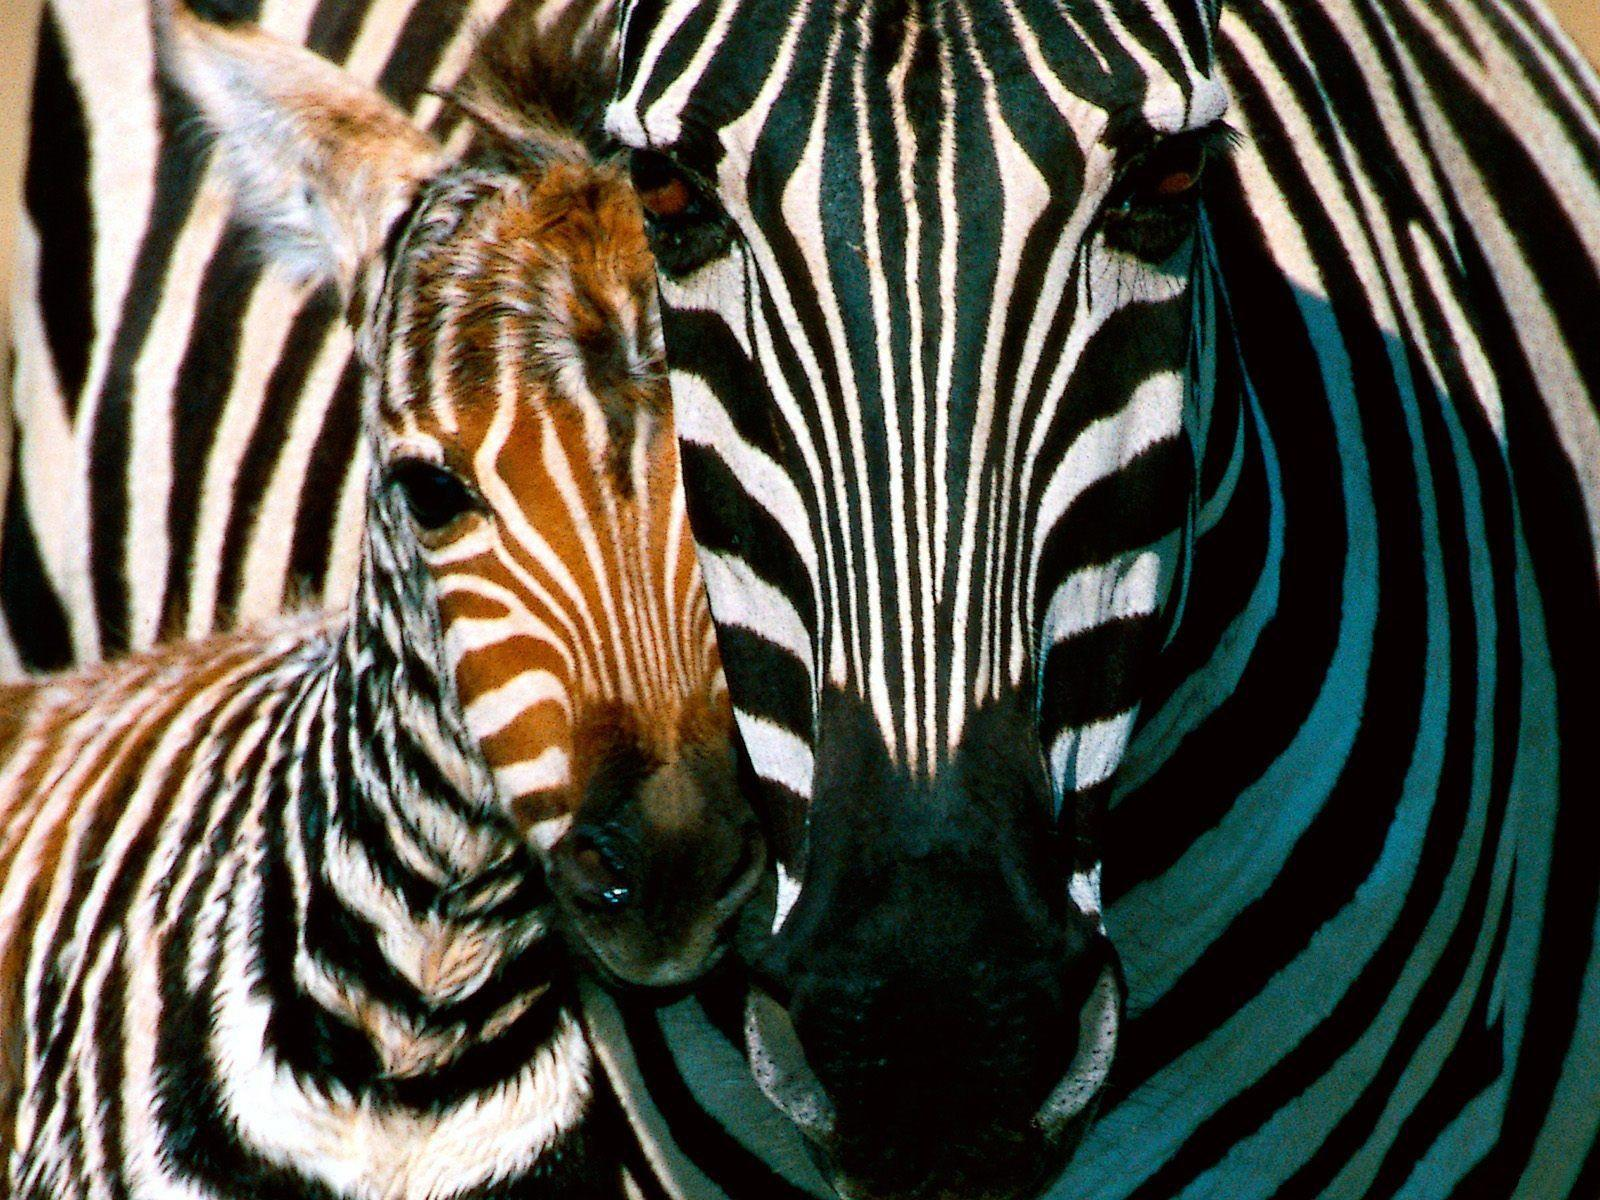 Download HD Desktop Wallpapers Zebras Wallpapers Hd Zebra Wallpapers